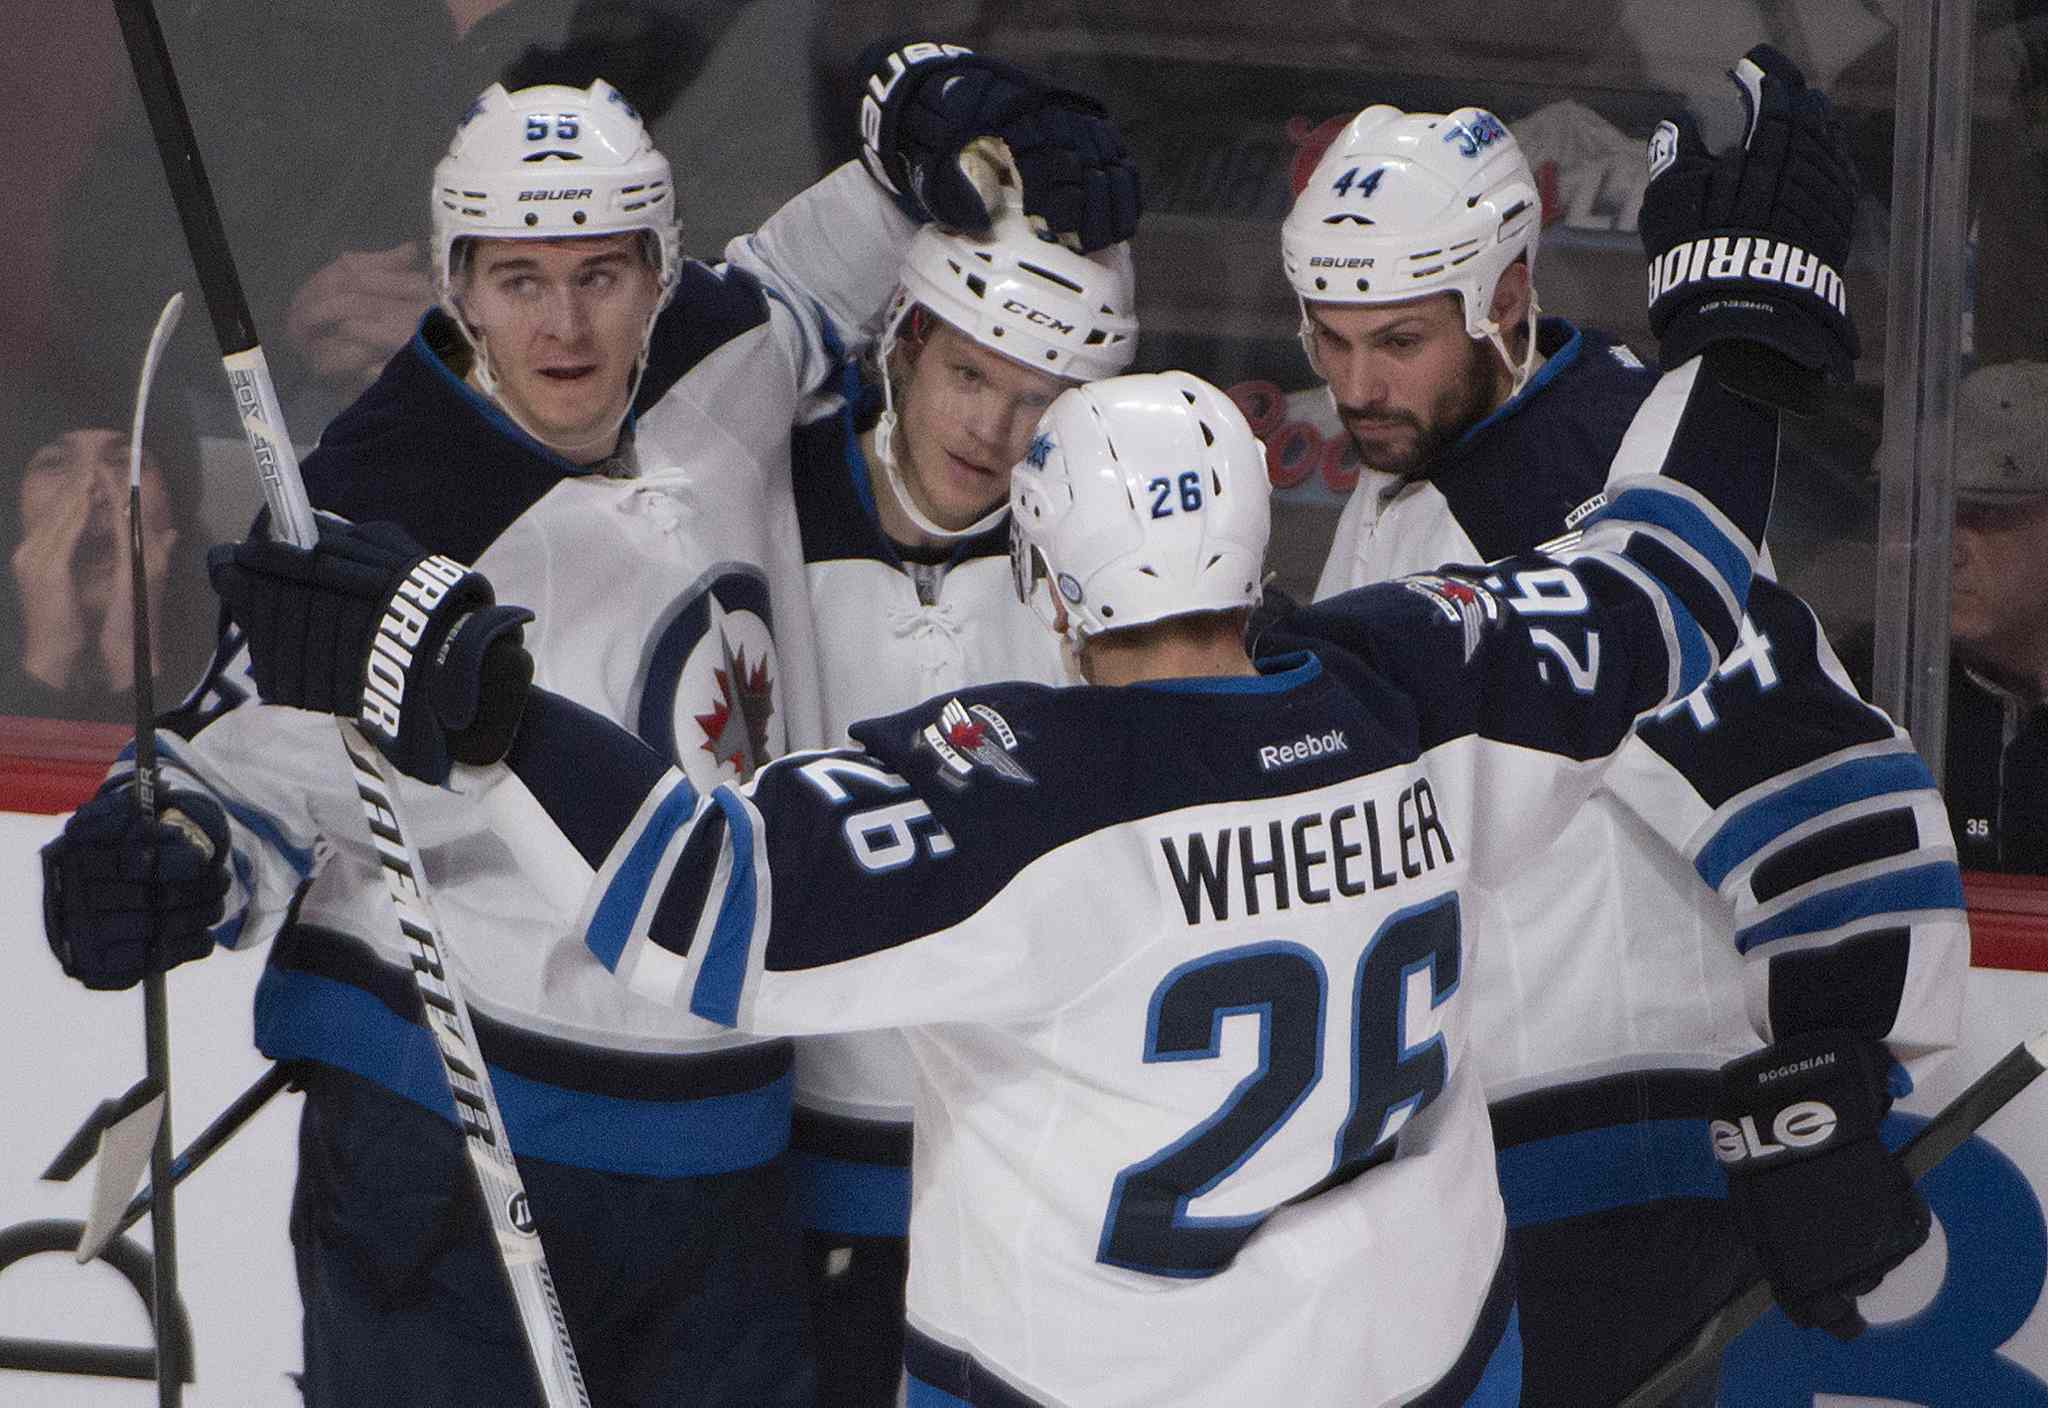 Winnipeg Jets' Tobias Enstrom, second from left, celebrates his second-period goal with Mark Scheifele (55), Blake Wheeler (26) and Zach Bogosian (44)after scoring against the Montreal Canadiens during the Jets 2-1 win in Montreal on Sunday.